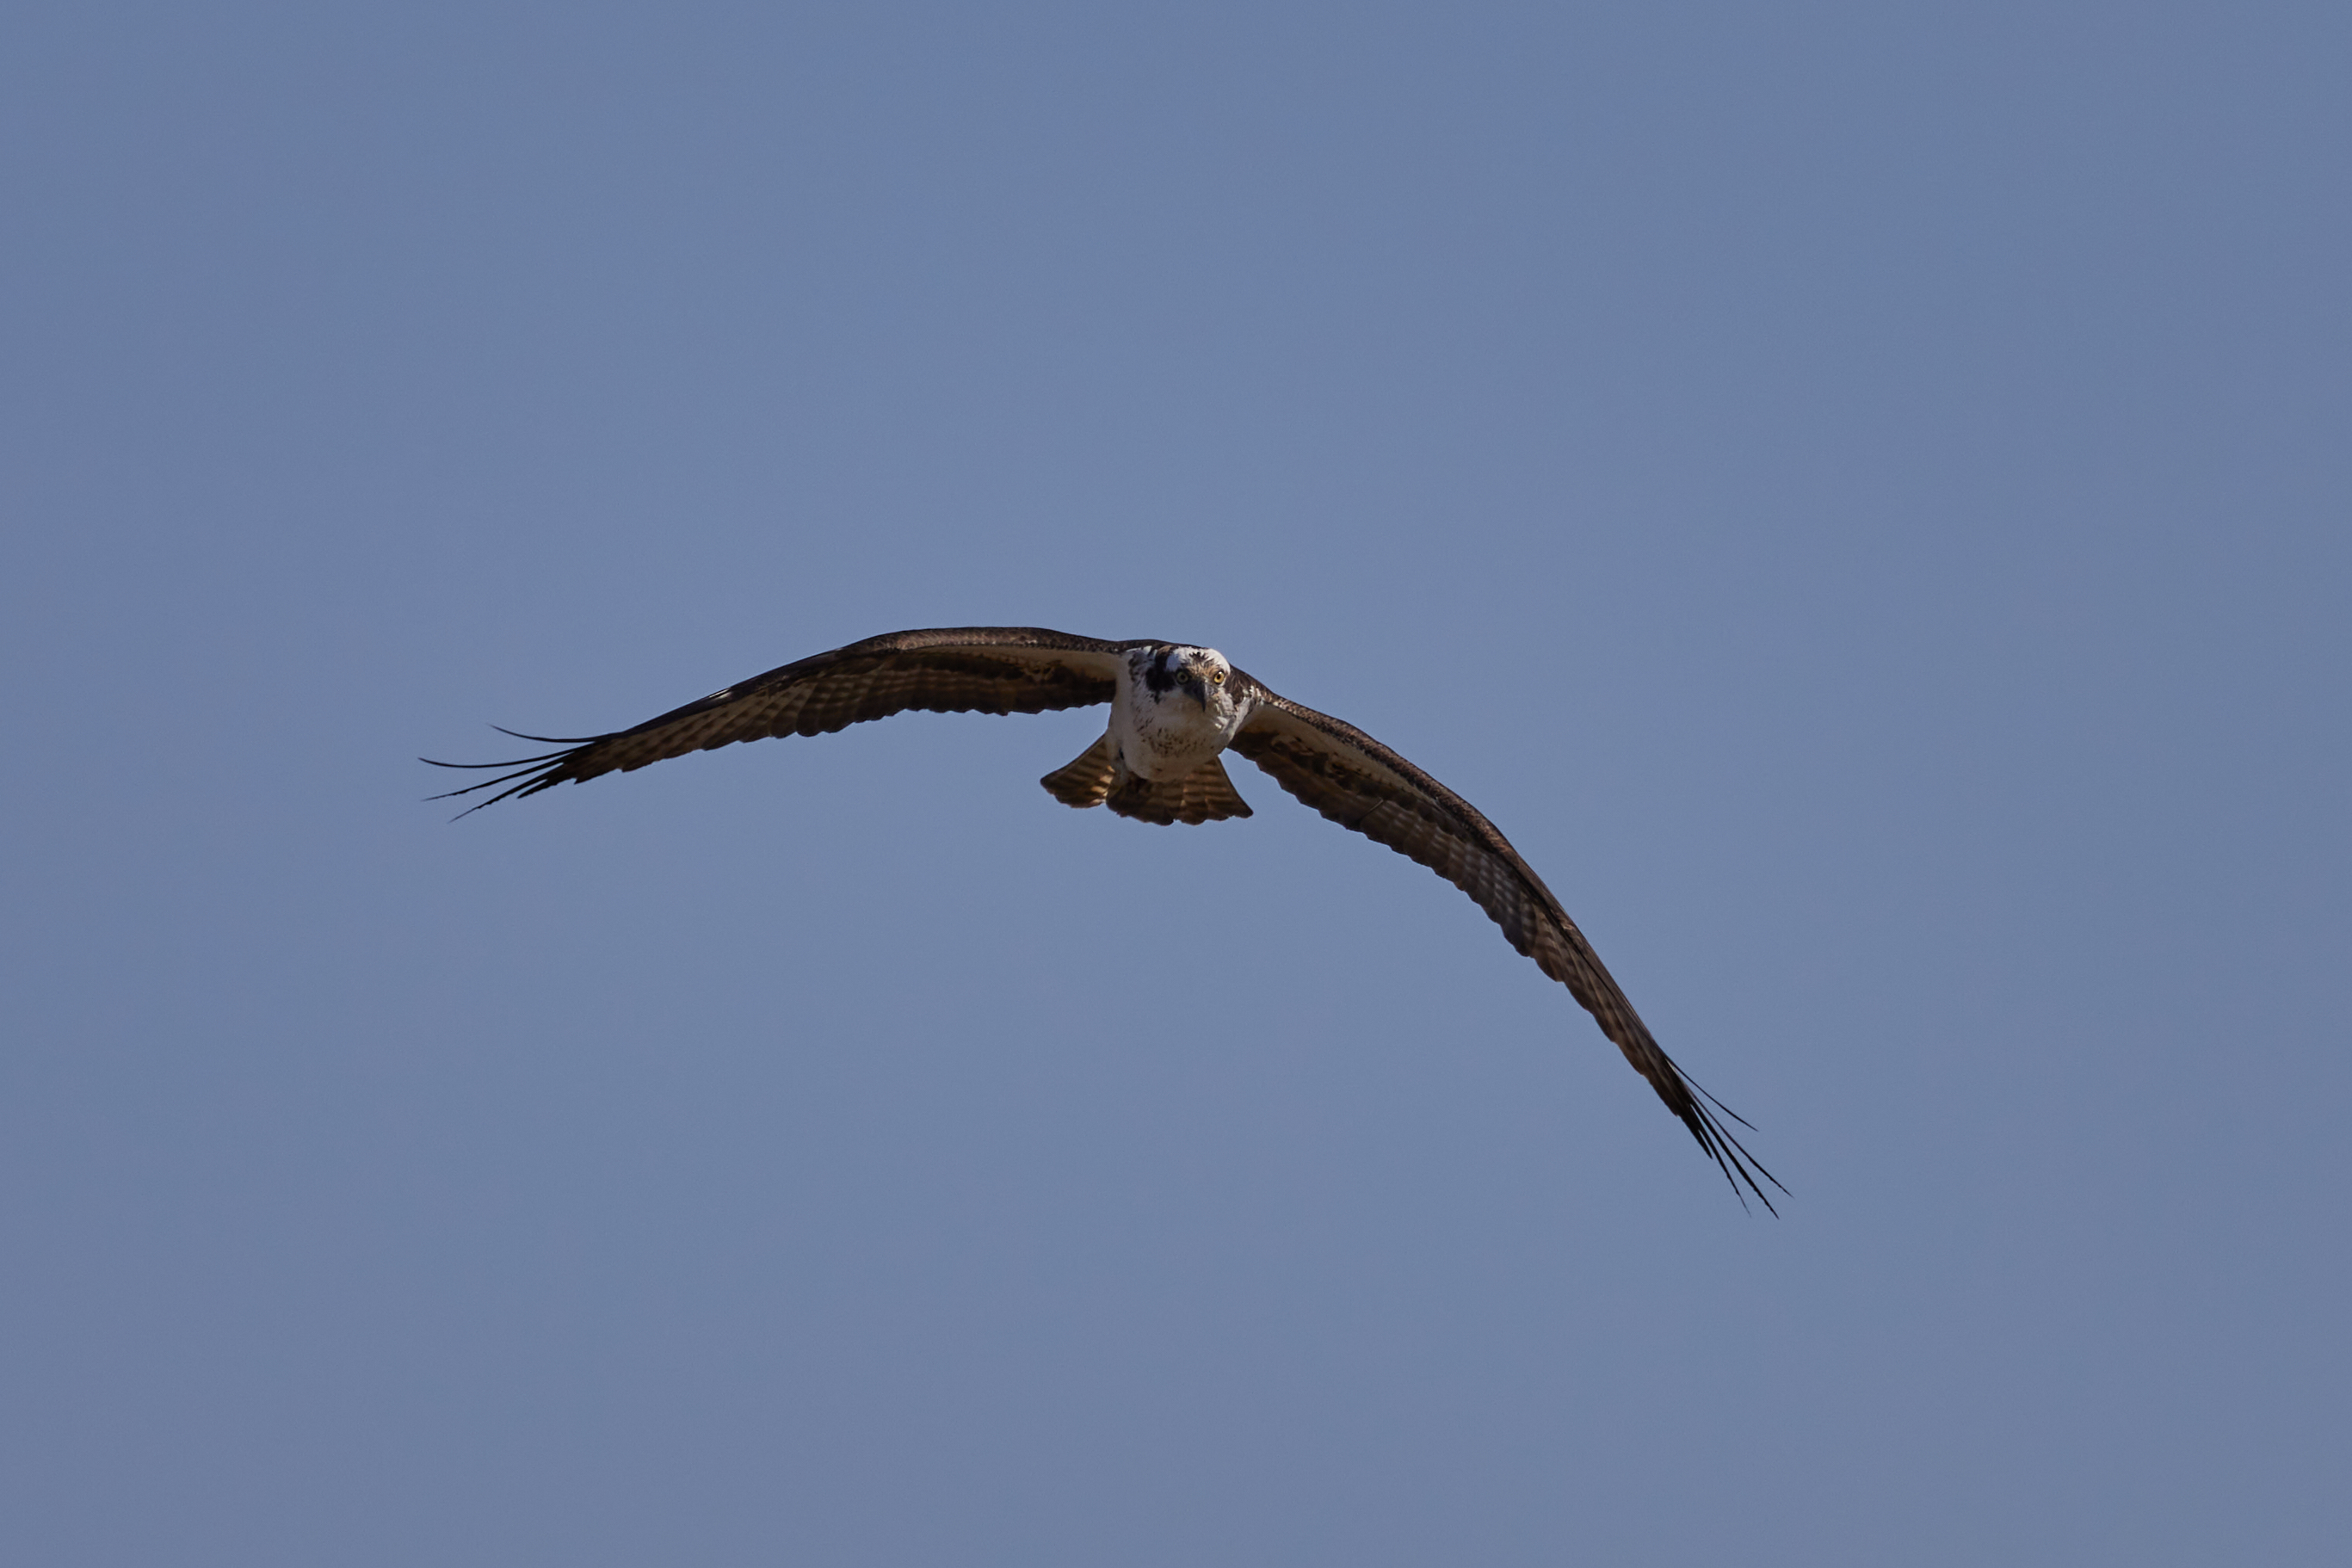 Osprey, with wings outstretched, in flight.